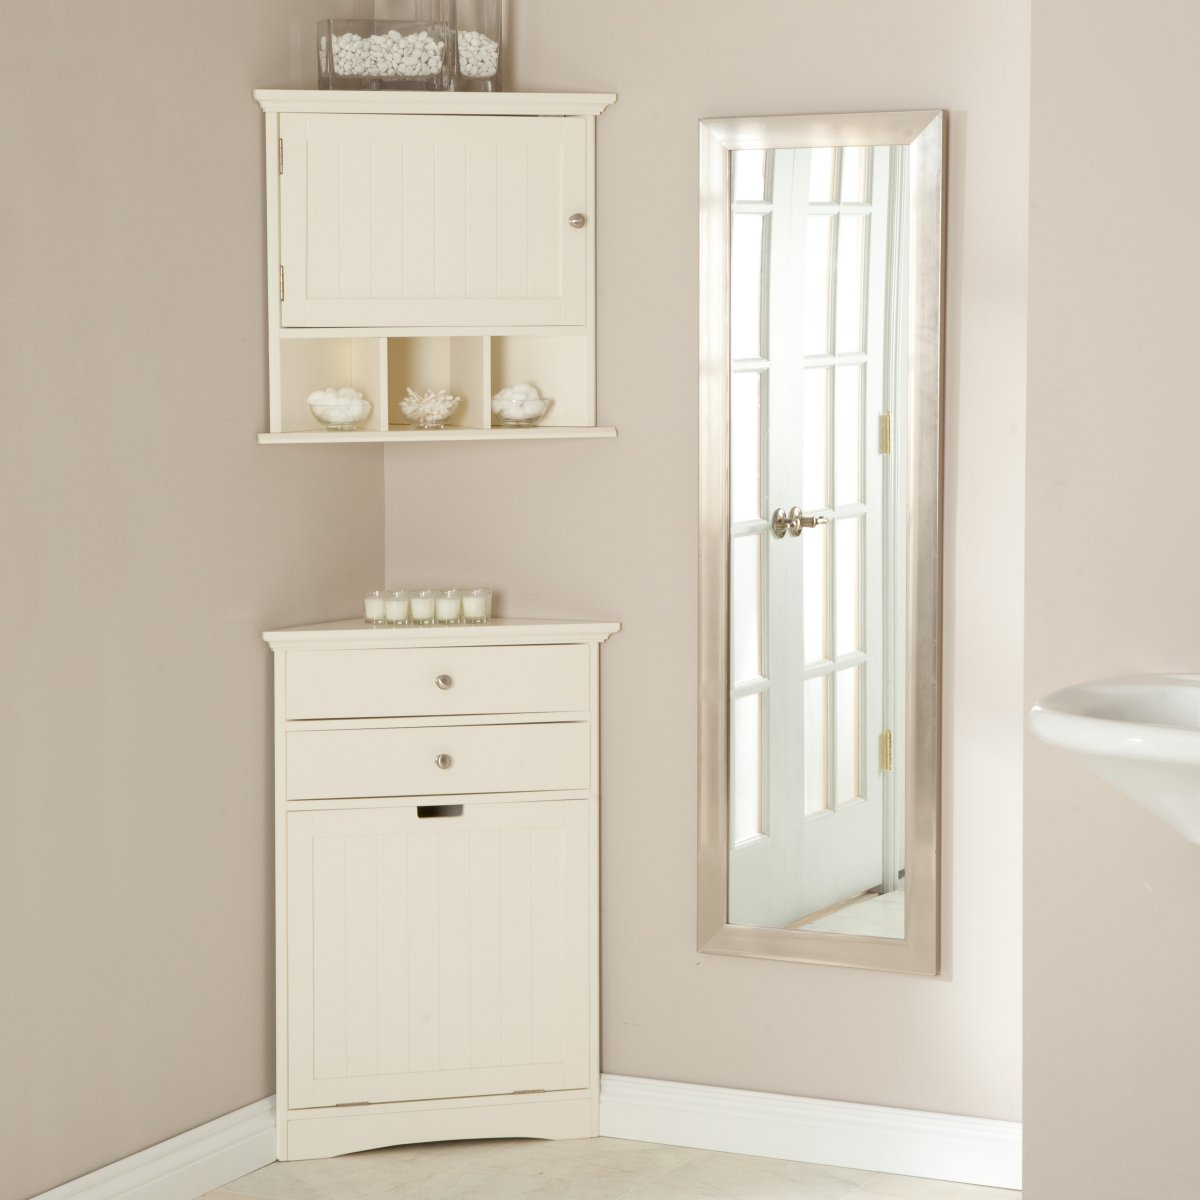 pretty white wooden cabinet for bathroom